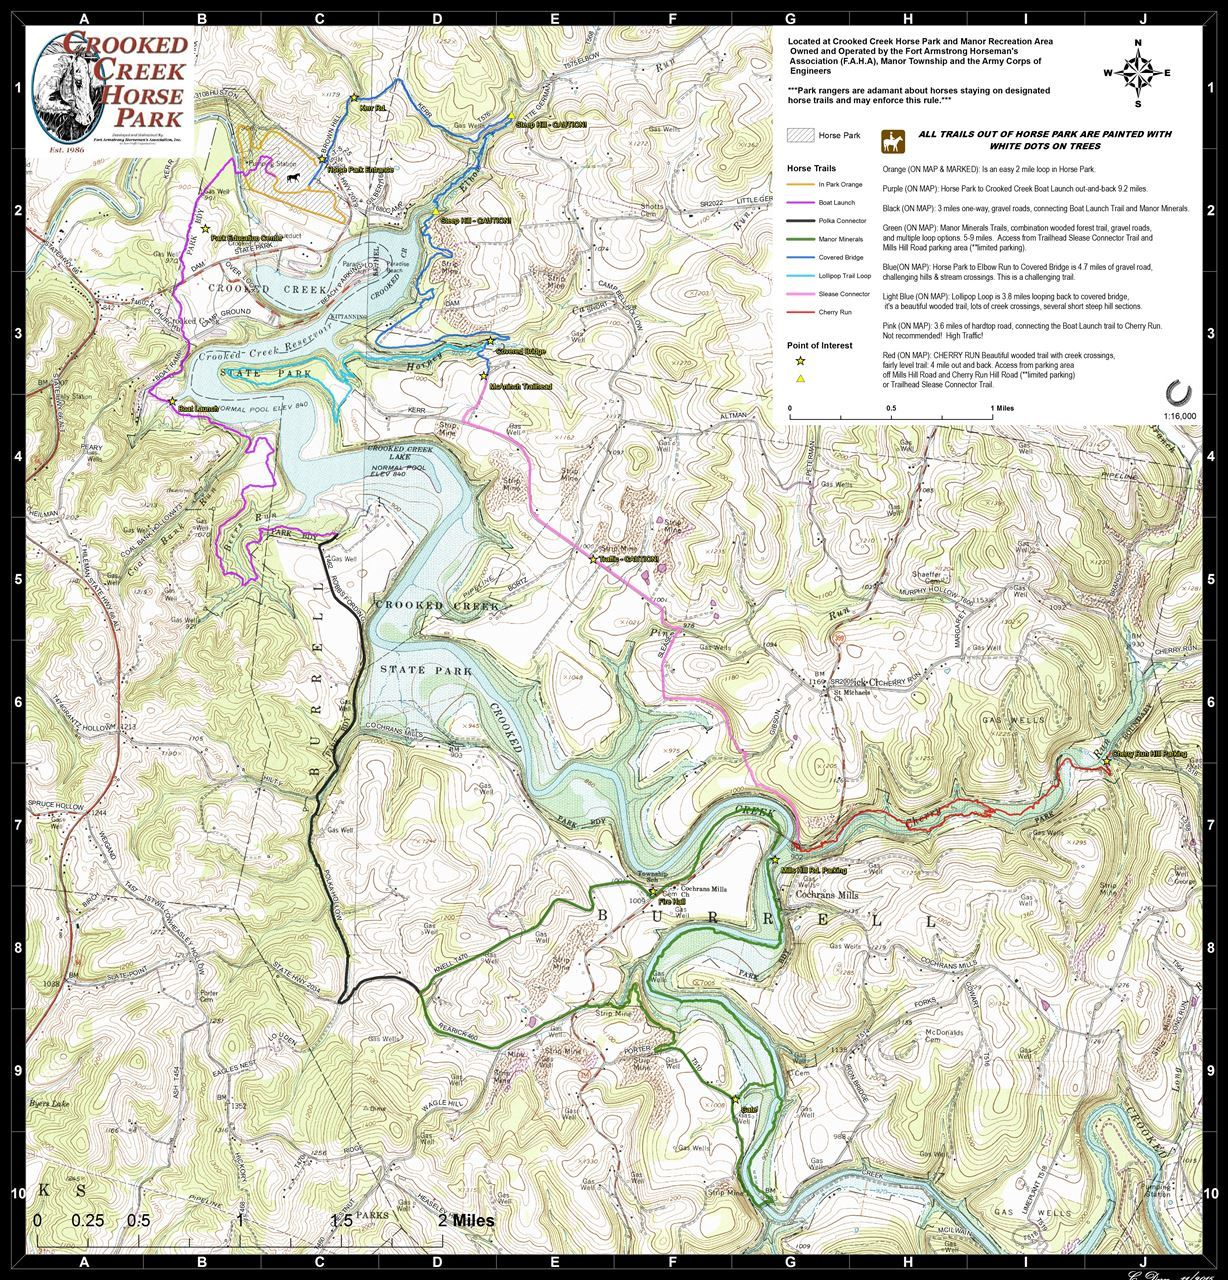 Fort armstrong horsemens association trails cchp all topo finalg crooked creek horse park trail system map publicscrutiny Image collections